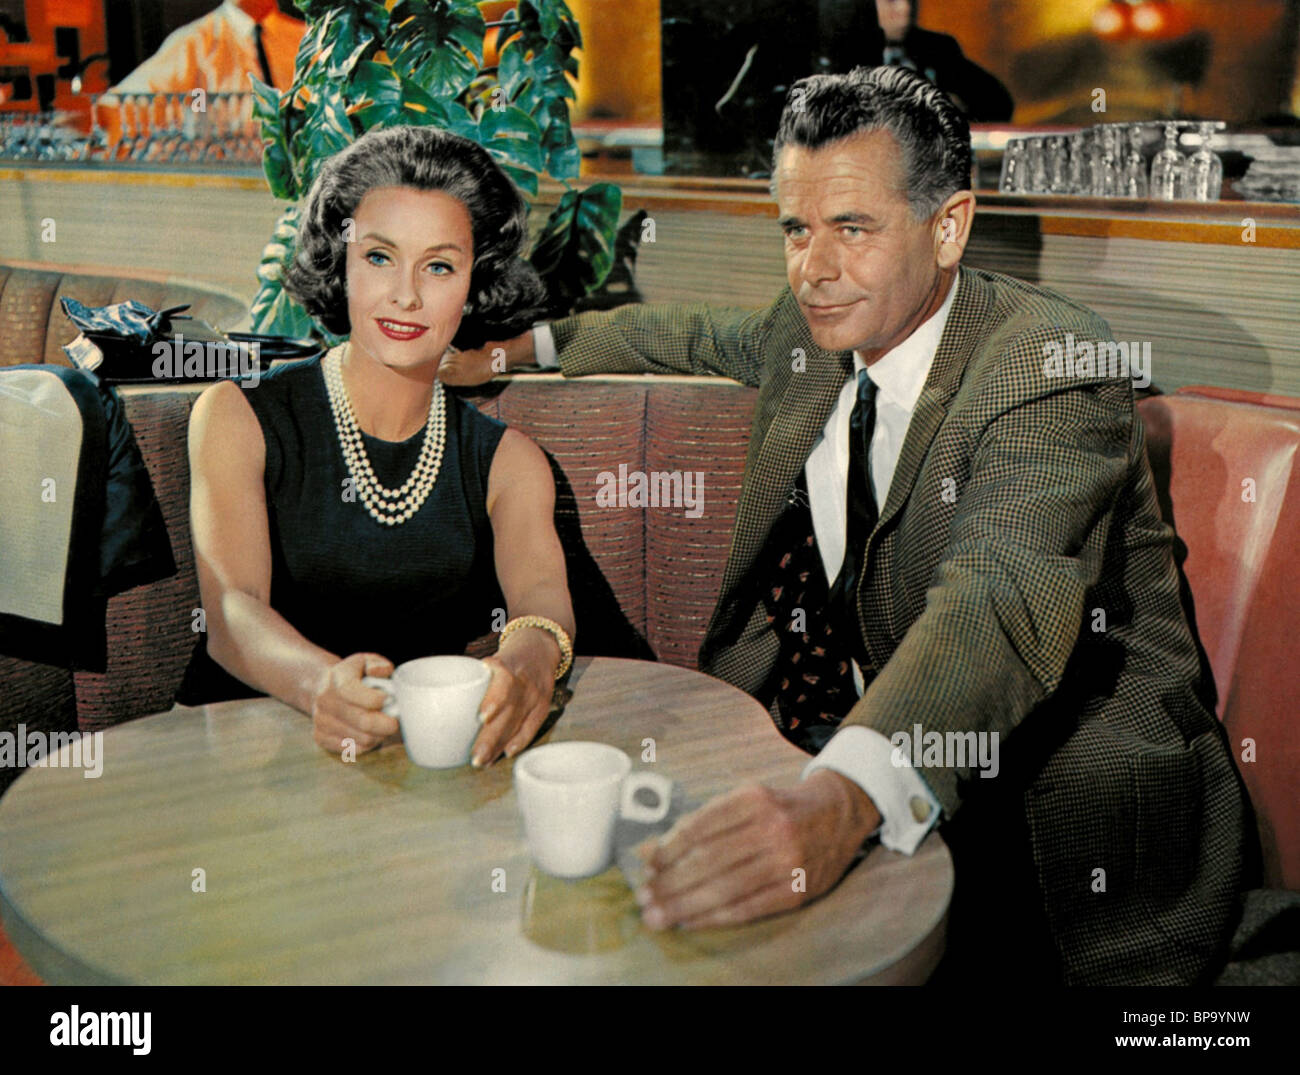 DINA MERRILL & GLENN FORD THE COURTSHIP OF EDDIE'S FATHER (1963) - Stock Image